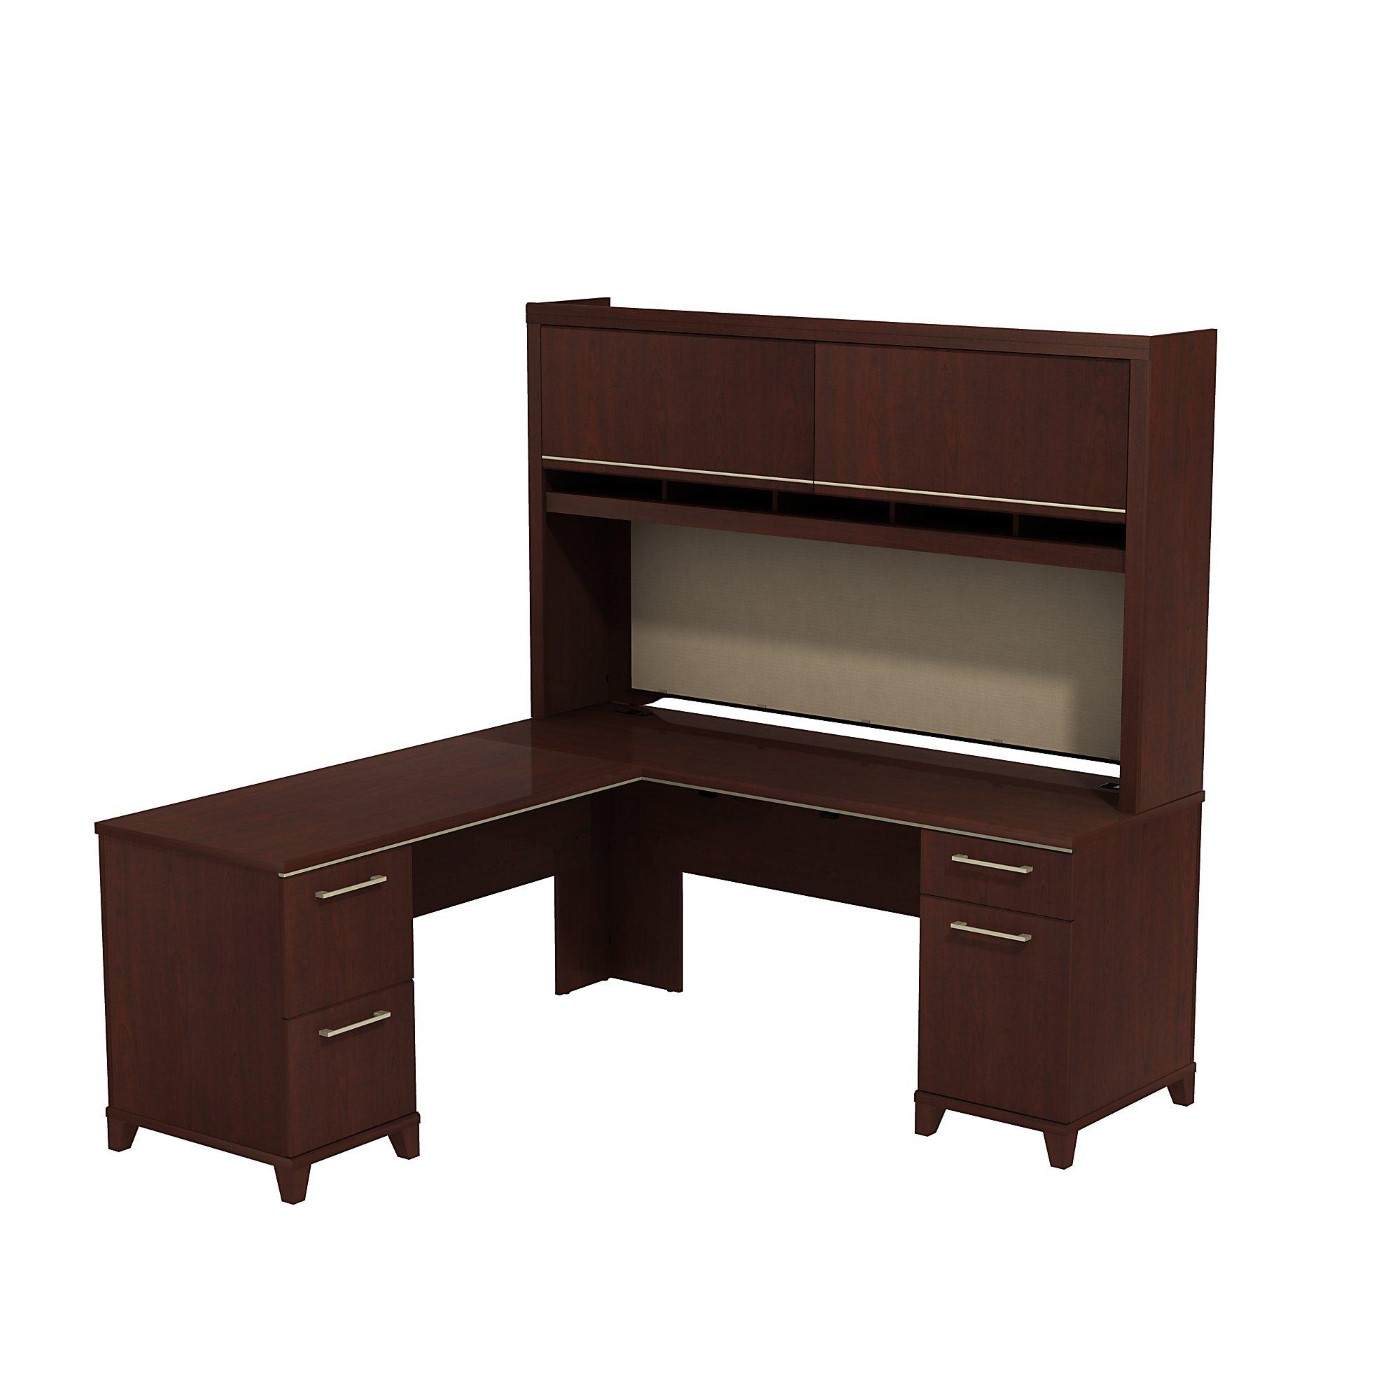 BUSH BUSINESS FURNITURE ENTERPRISE 72W X 72D L SHAPED DESK WITH HUTCH #EH-ENT008CS. FREE SHIPPING</font></b></font></b>&#x1F384<font color=red><b>ERGONOMICHOME HOLIDAY SALE - ENDS DEC. 17, 2019</b></font>&#x1F384